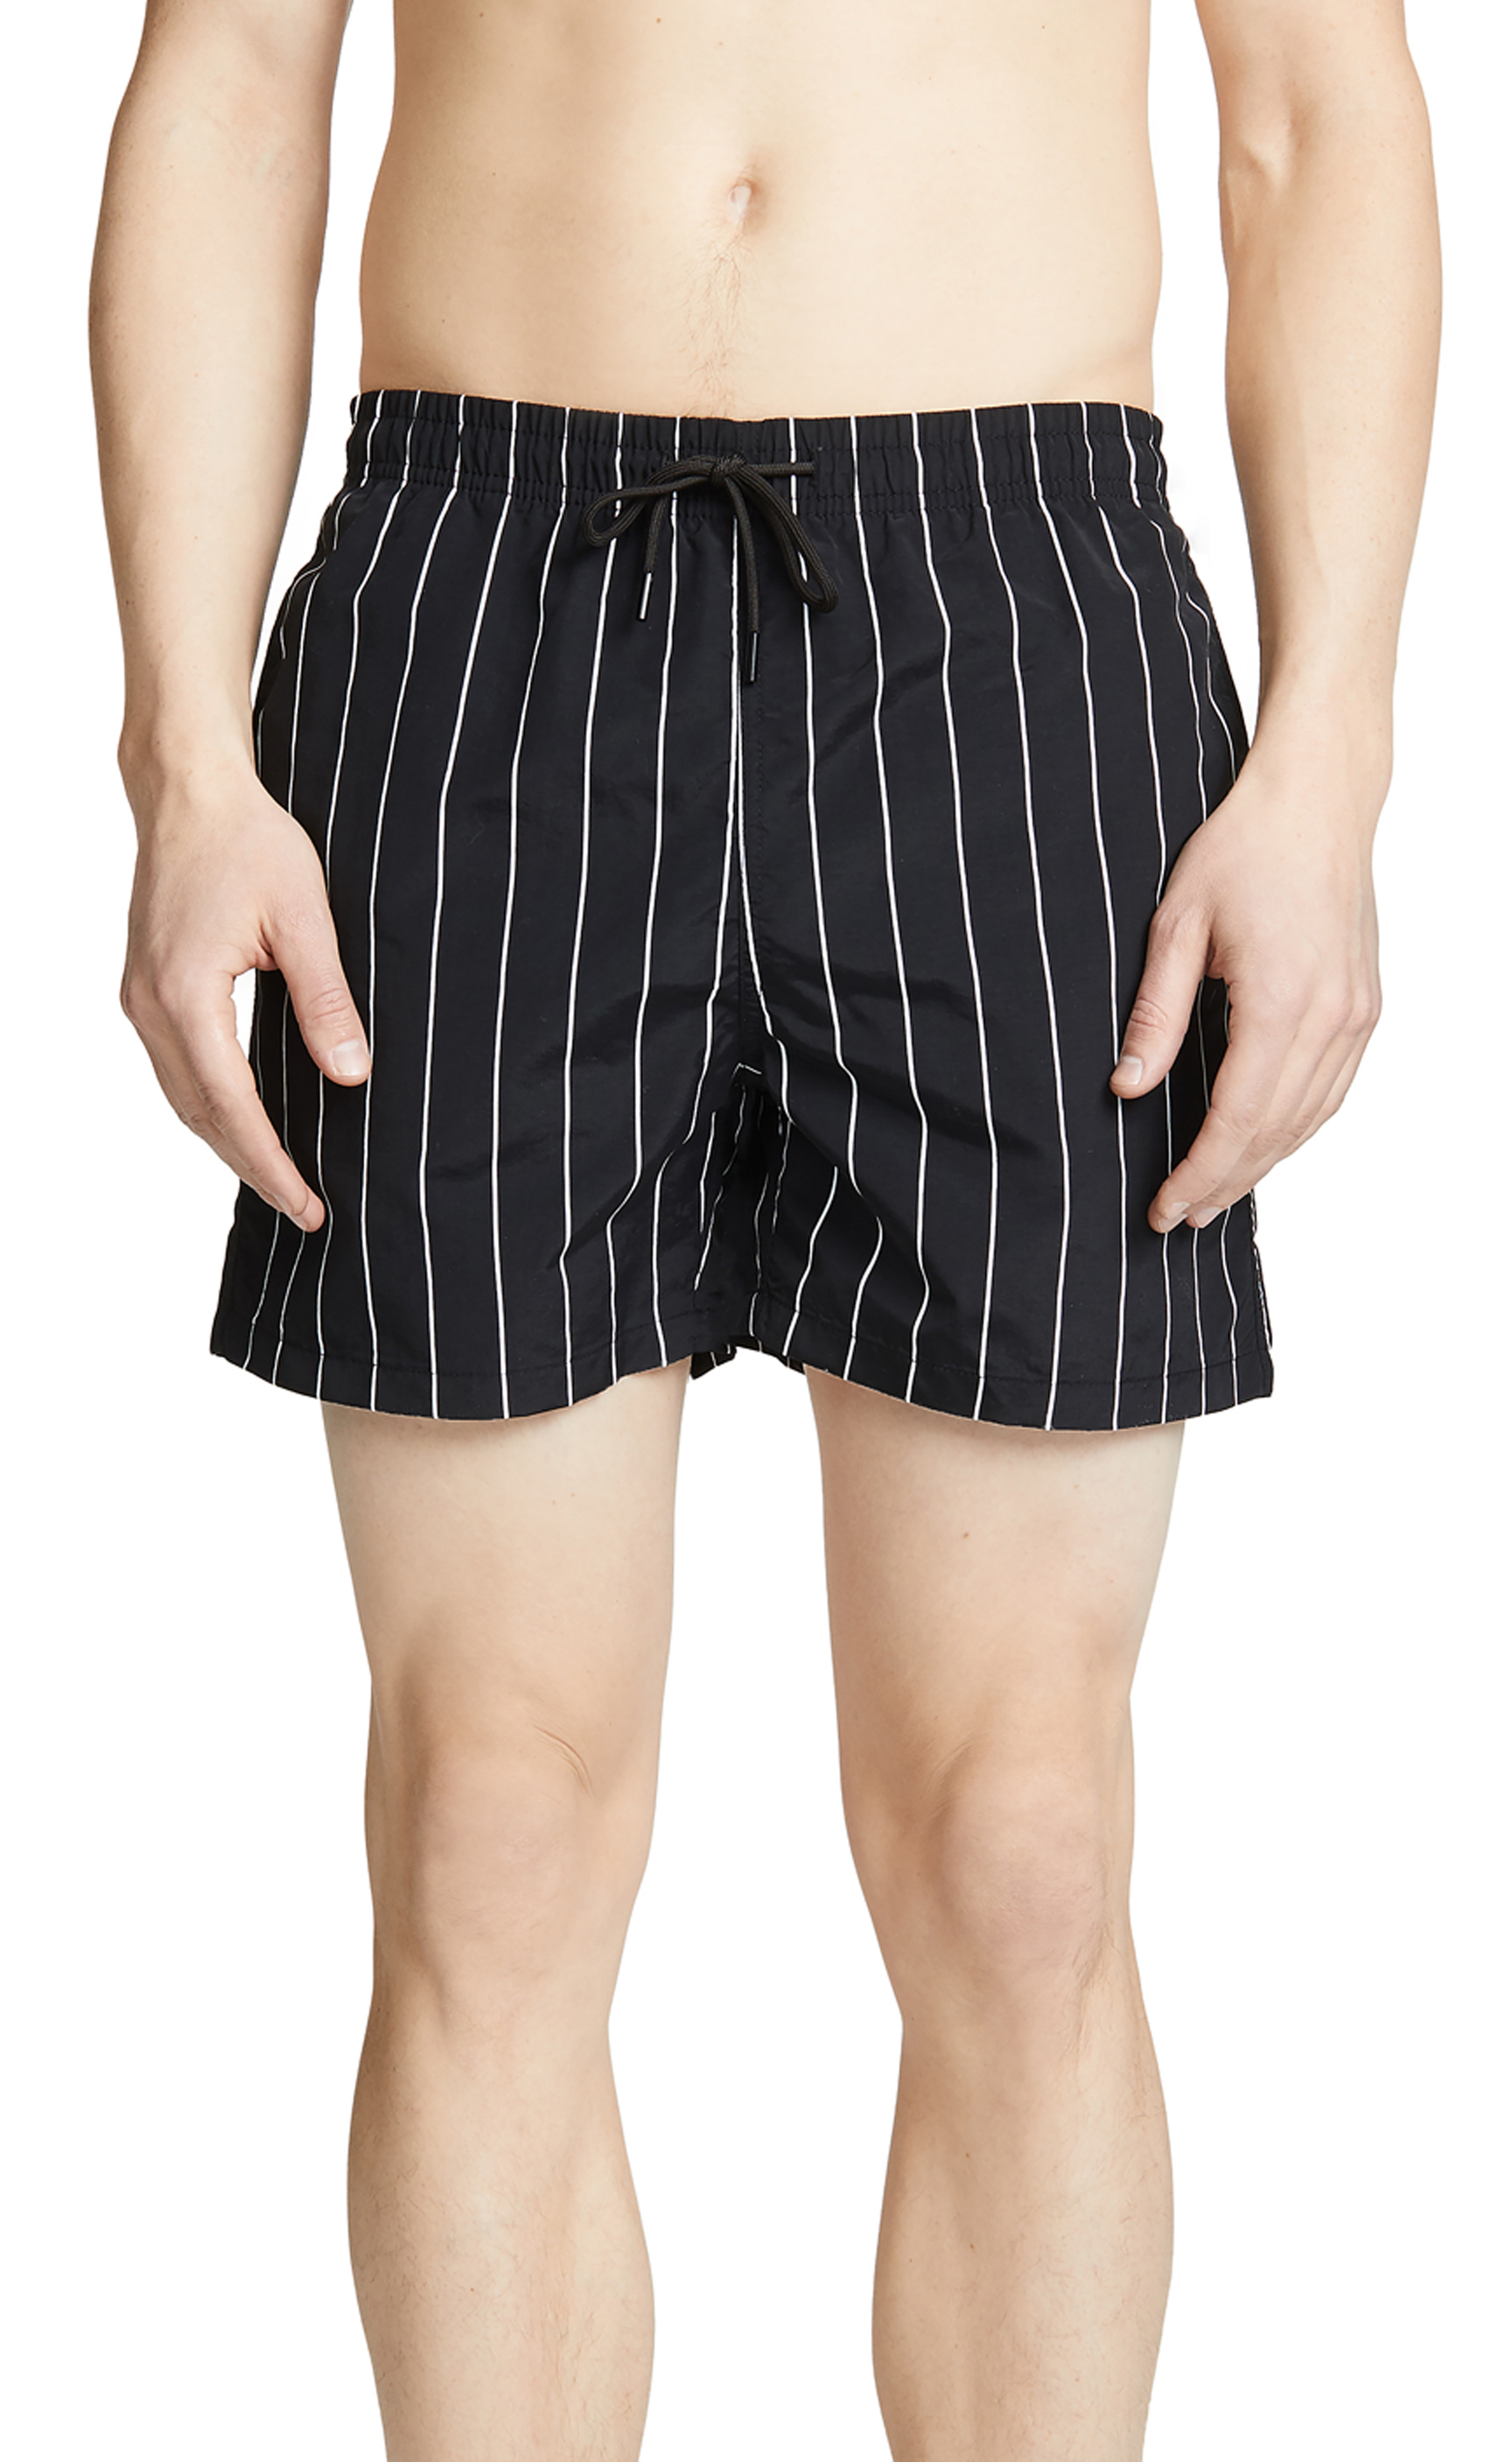 Black Striped Trunks